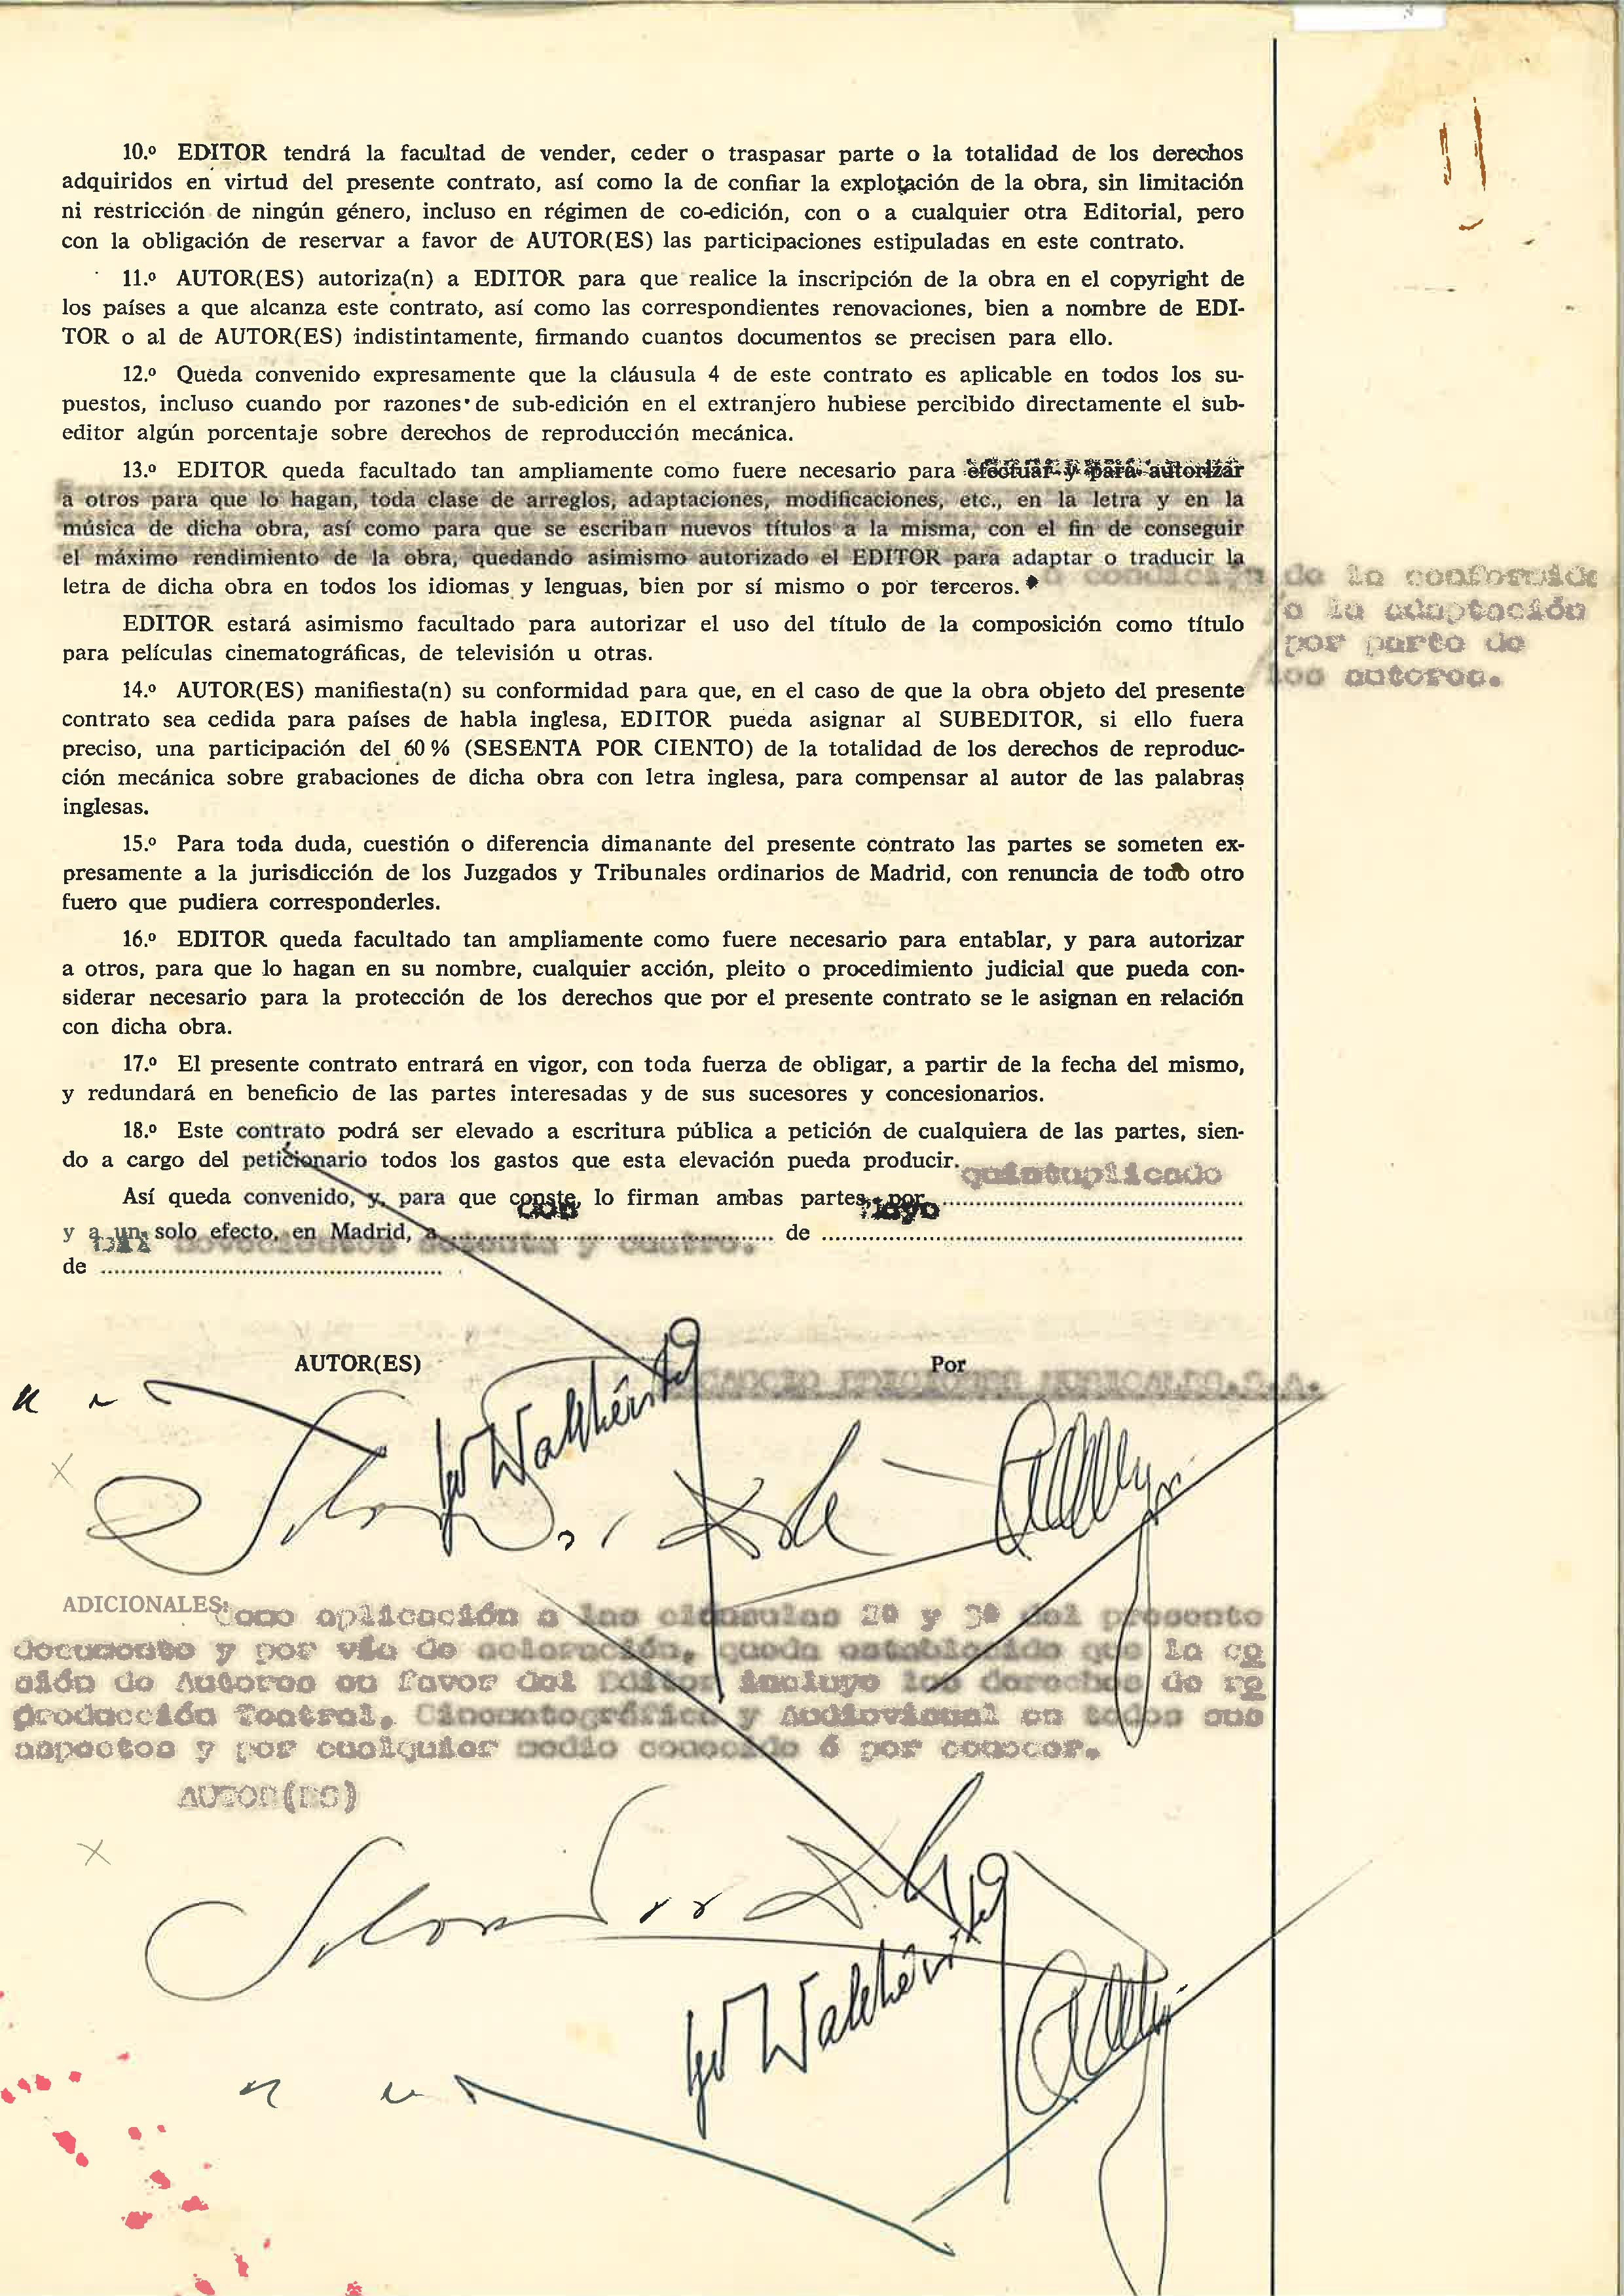 """Last page of the contract between Salvador Dali, Igor Wakhevitch, Vasquez Montalban with their signature as co-authors of """"Etre Dieu"""""""